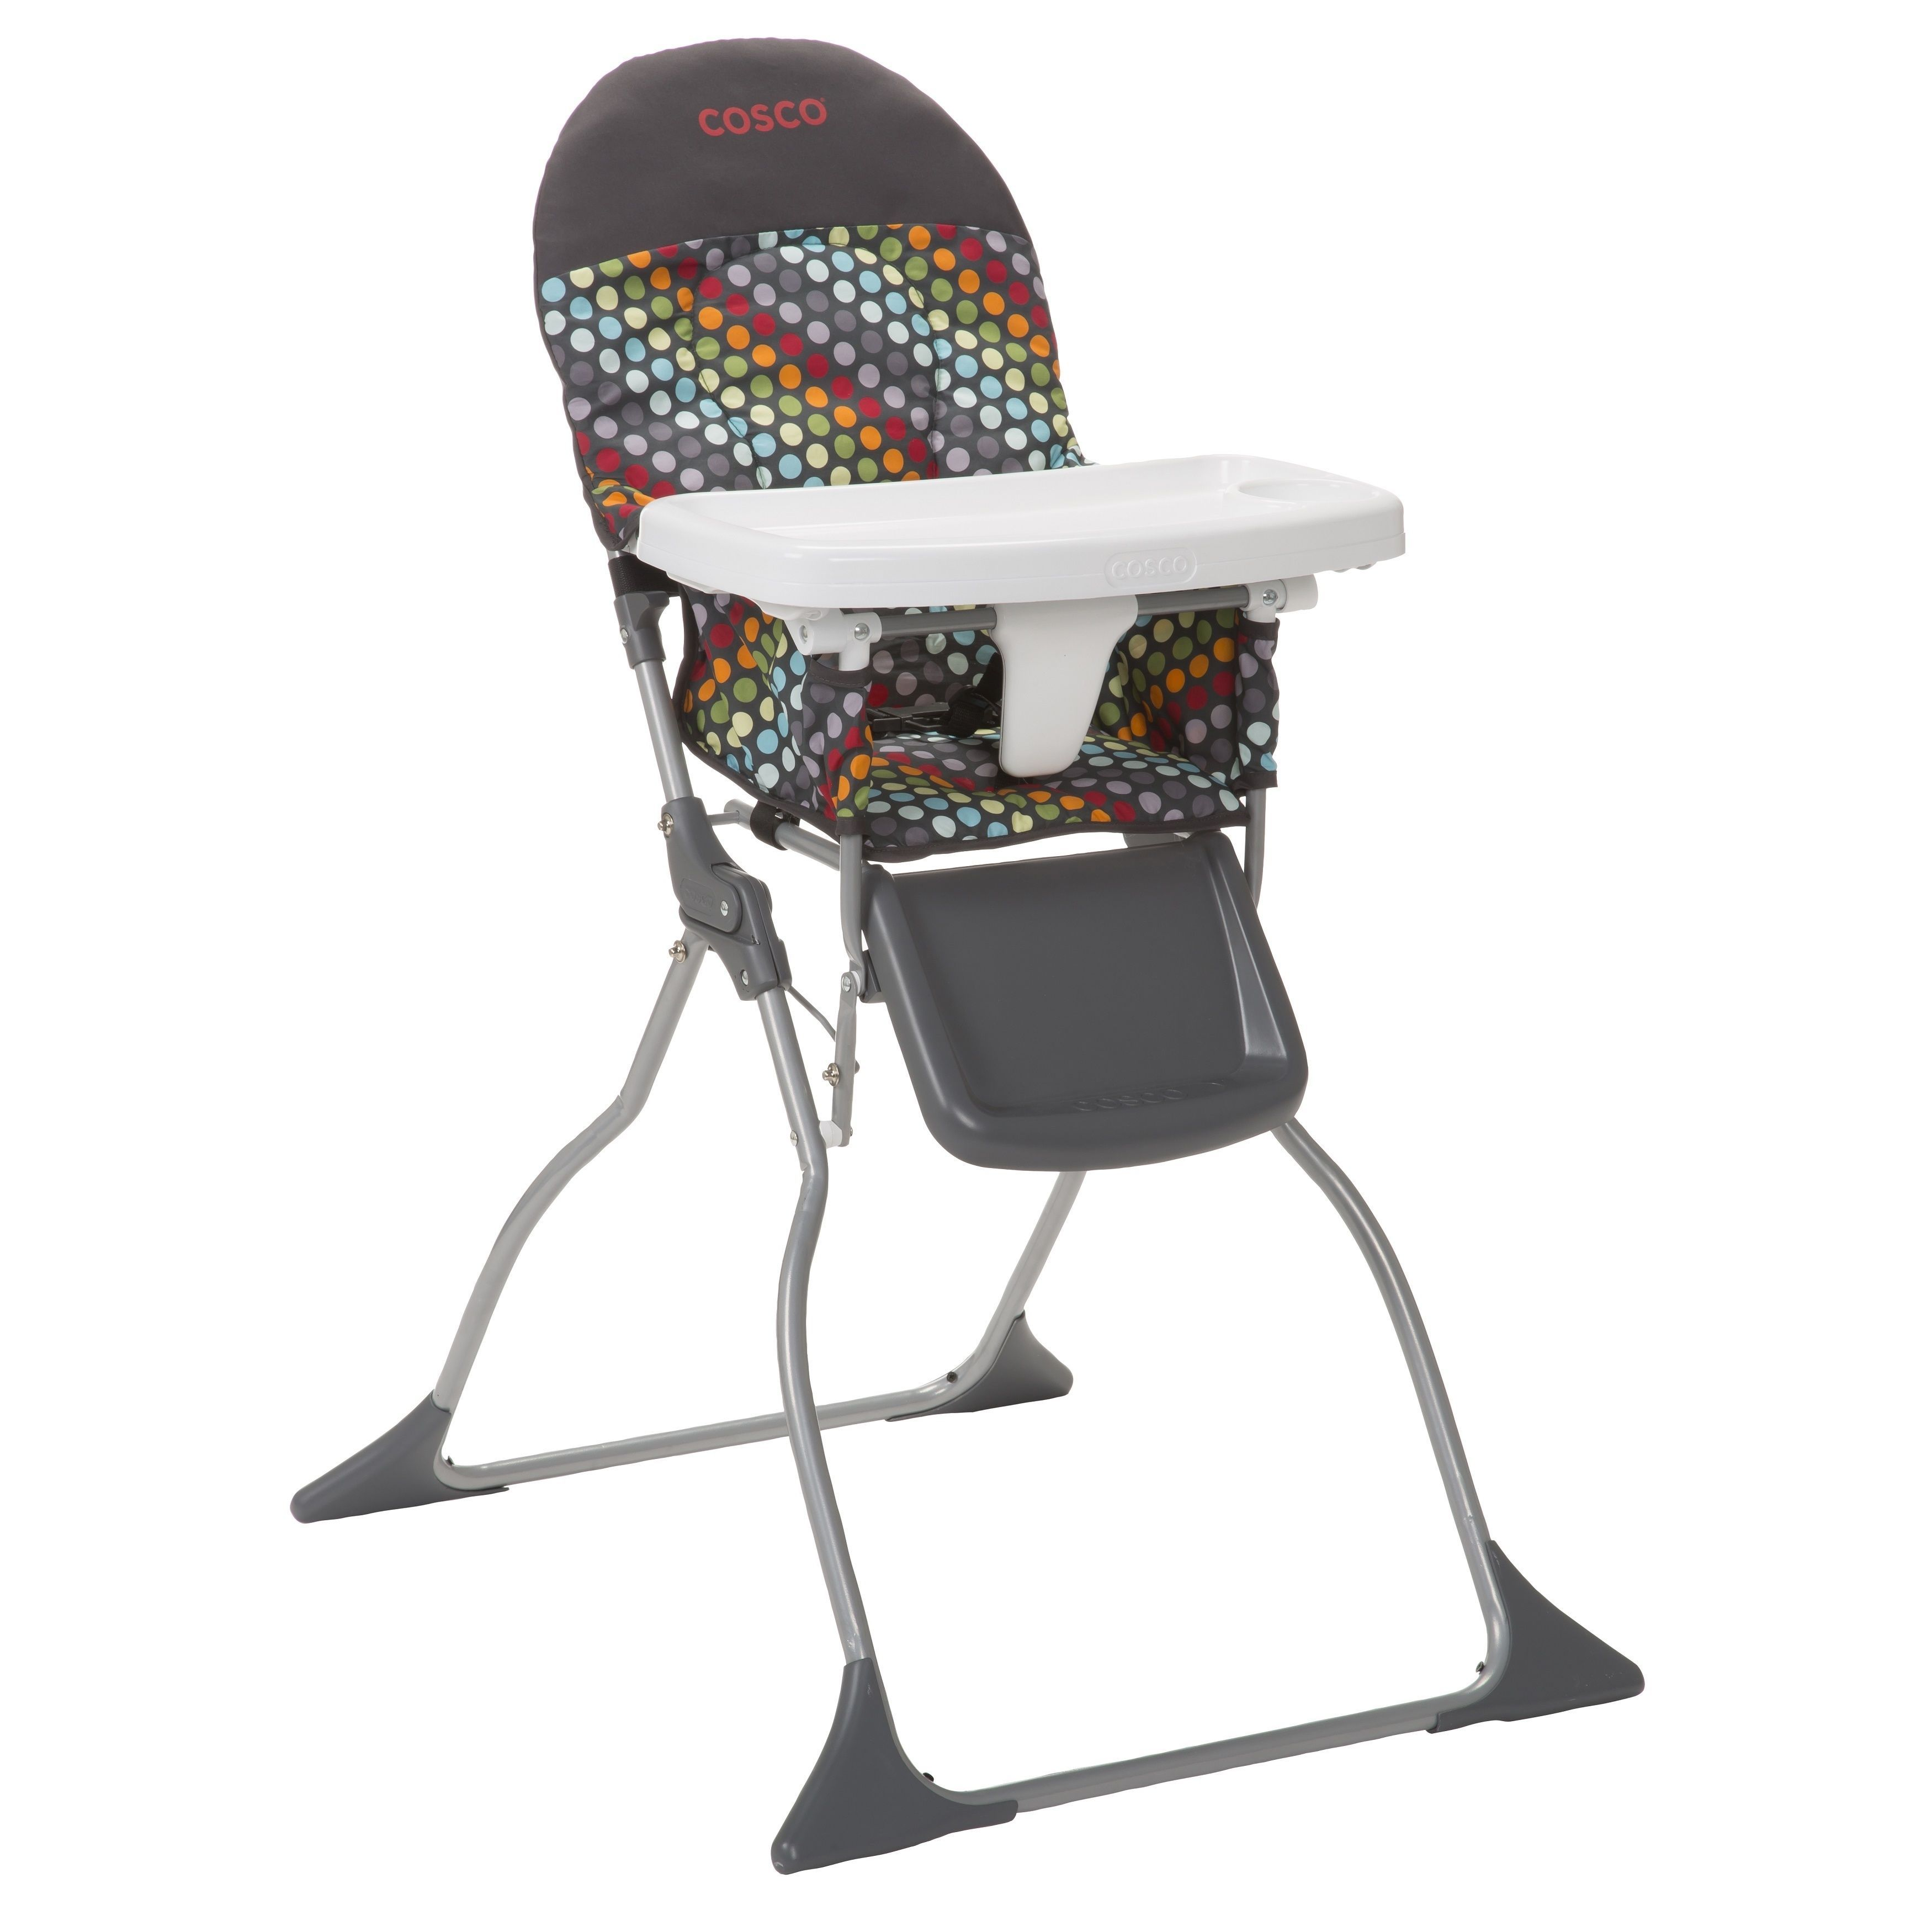 r boy baby babiesrus walmart for chair decoration gallery intended best boosters us home babies chairs high ba